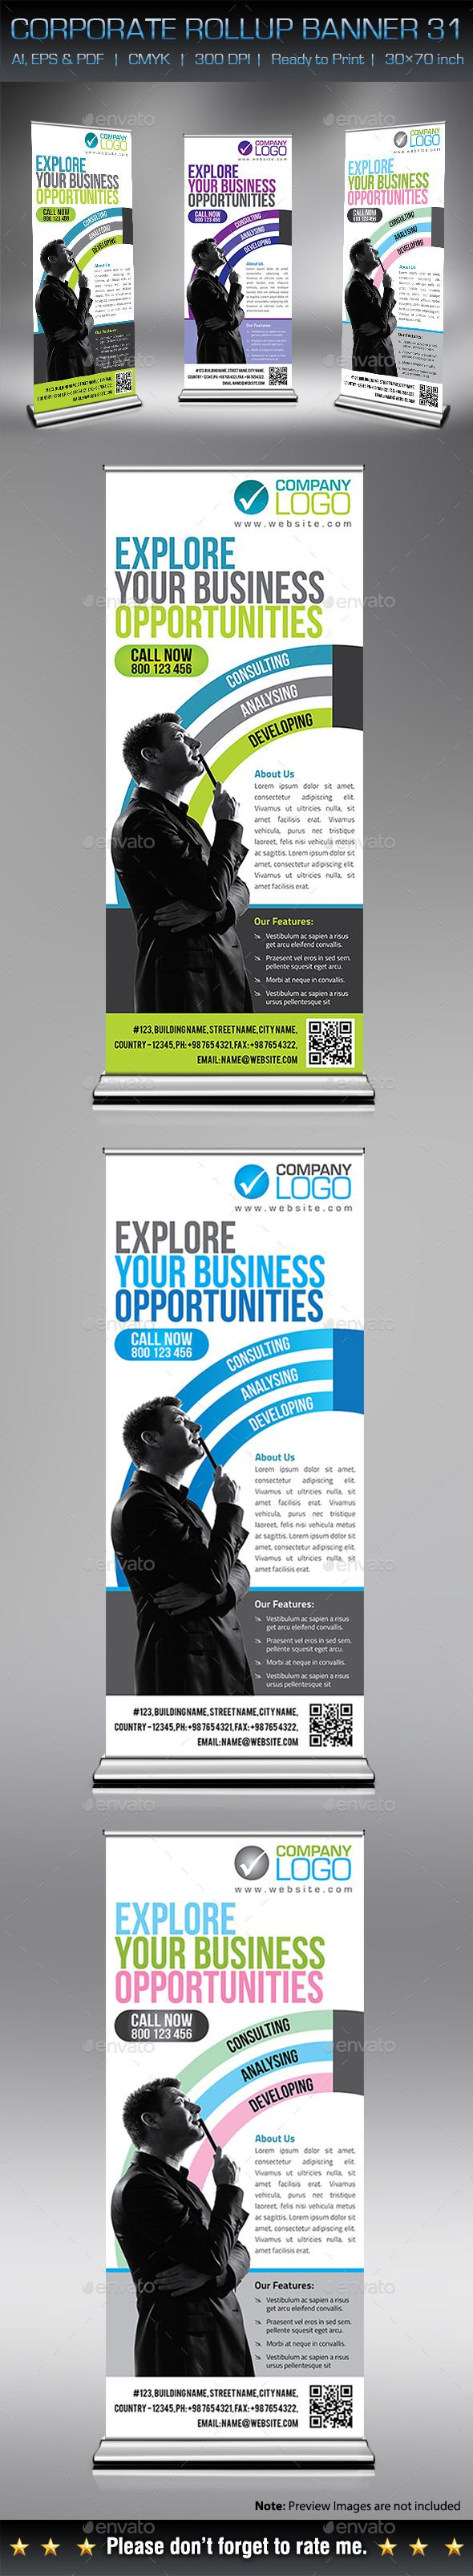 Corporate Business Rollup Banner Template Design Download